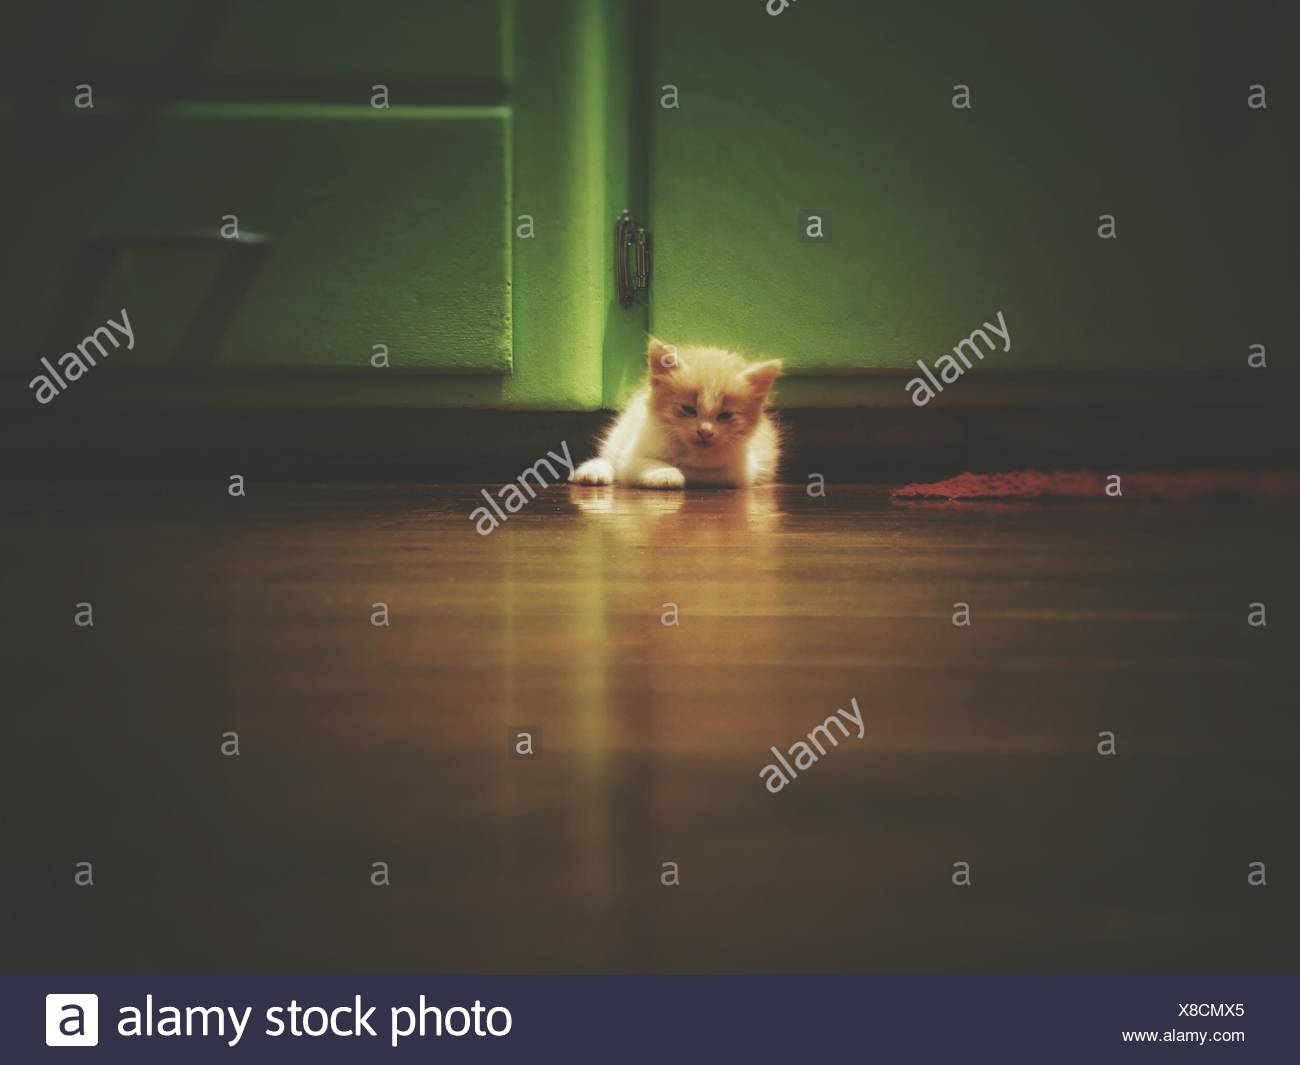 Close-Up Of Kitten On Floor - Stock Image